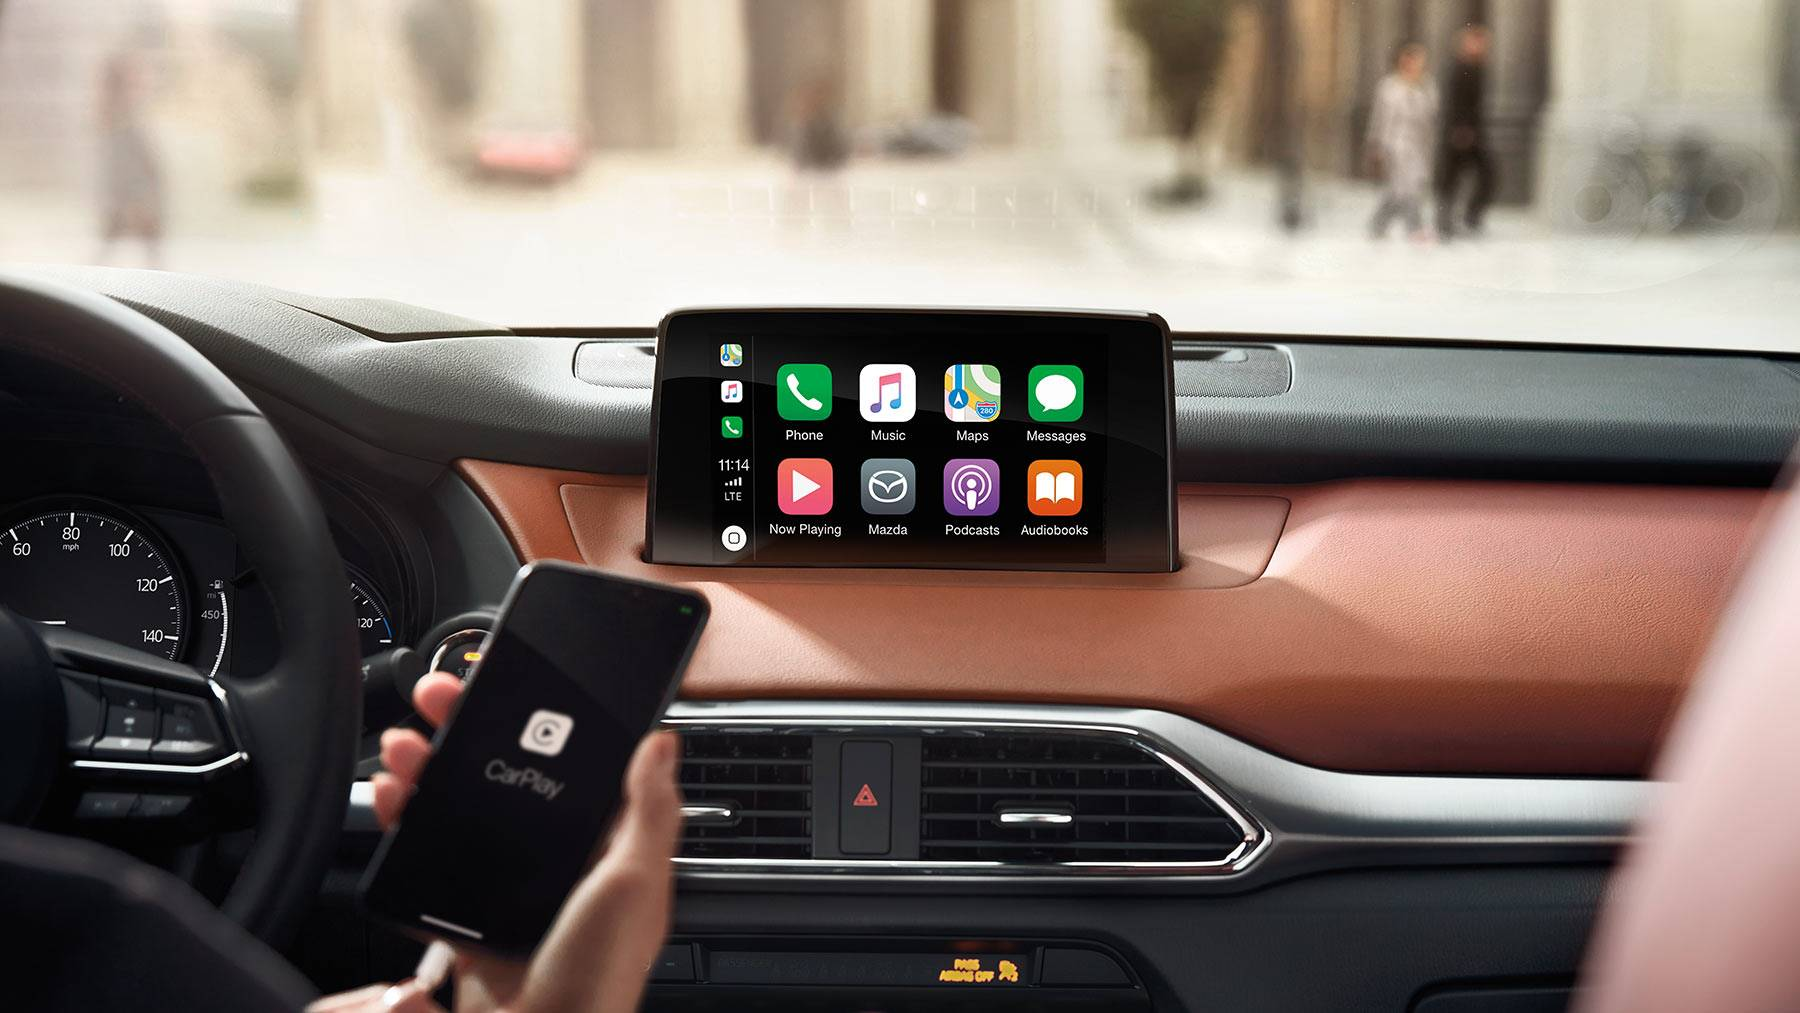 All Your Media at Your Fingertips in the Mazda CX-9!